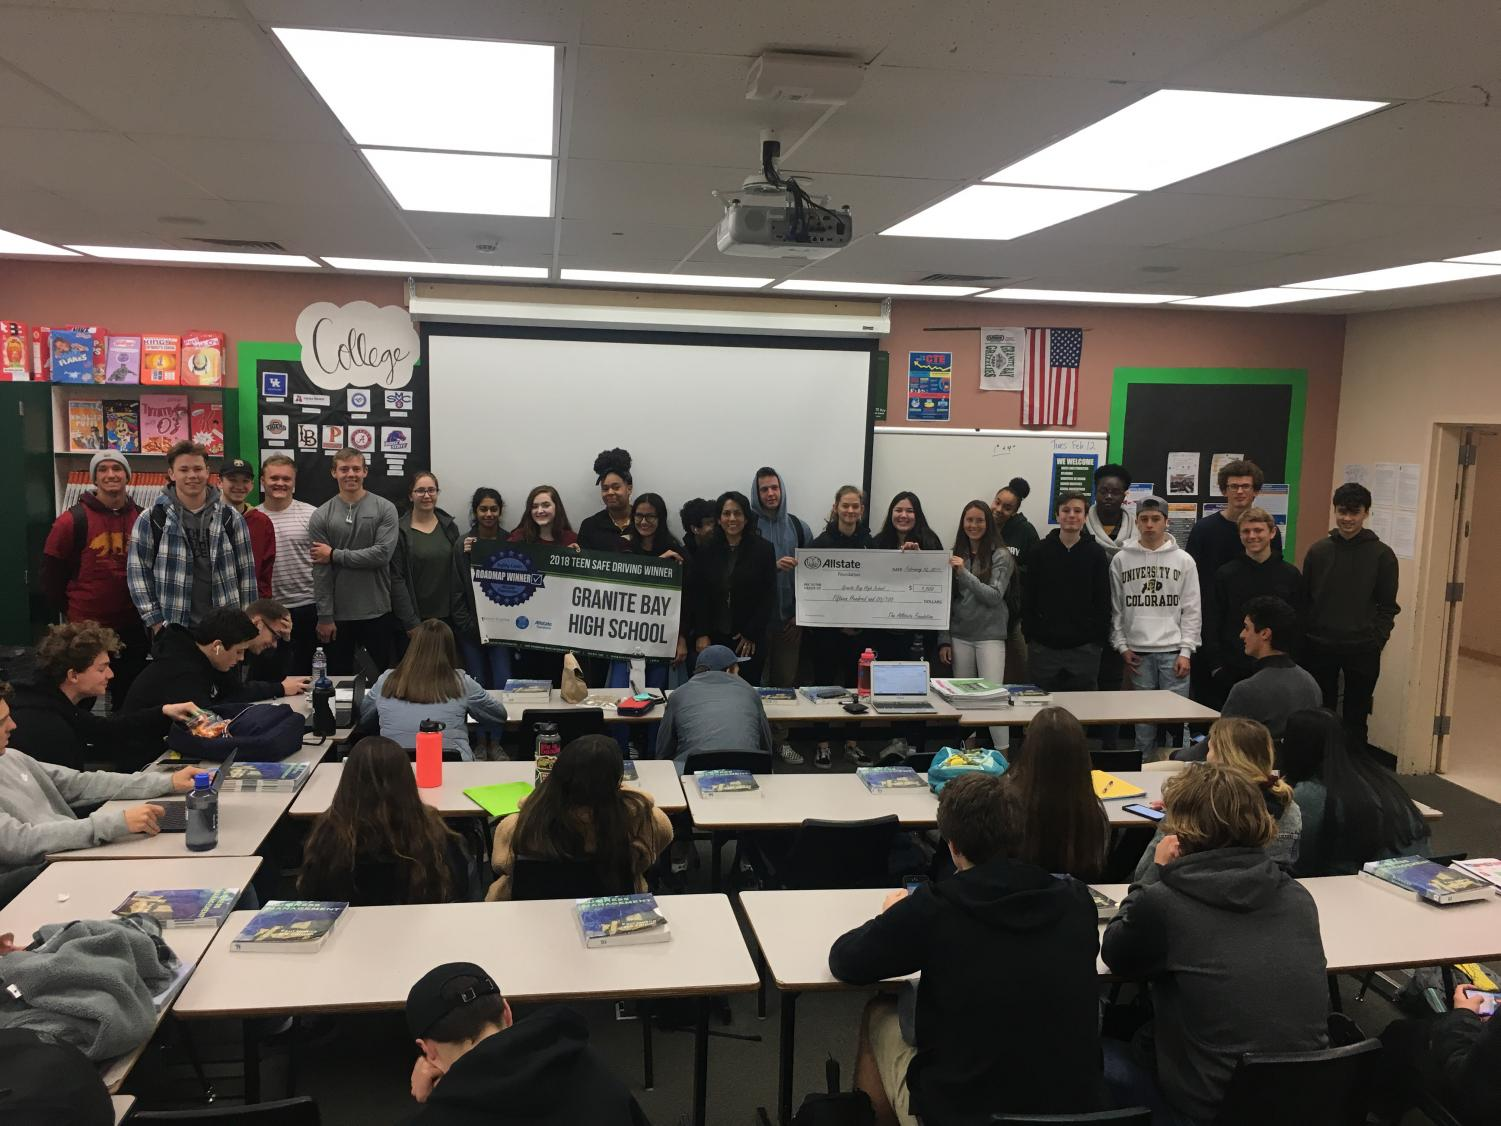 The Sports and Entertainment Marketing class receives a $1,500 check and a banner after getting first place in the Teen Safe Driving Campaign put on by Allstate.